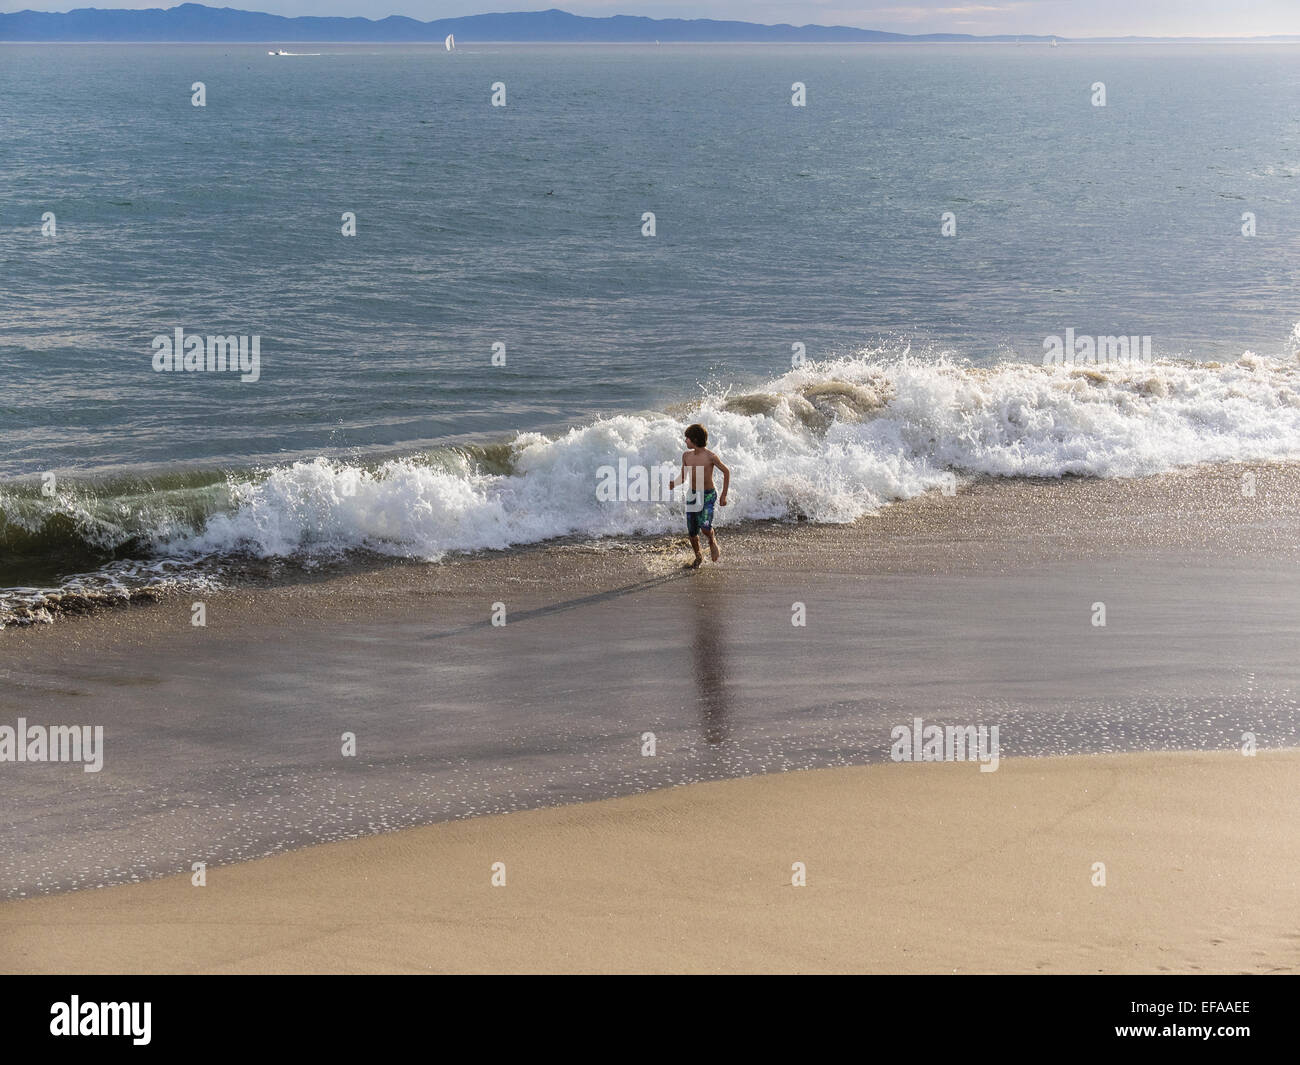 A young boy in a bathing suit plays in the surf at the beach in Santa Barbara, California. - Stock Image